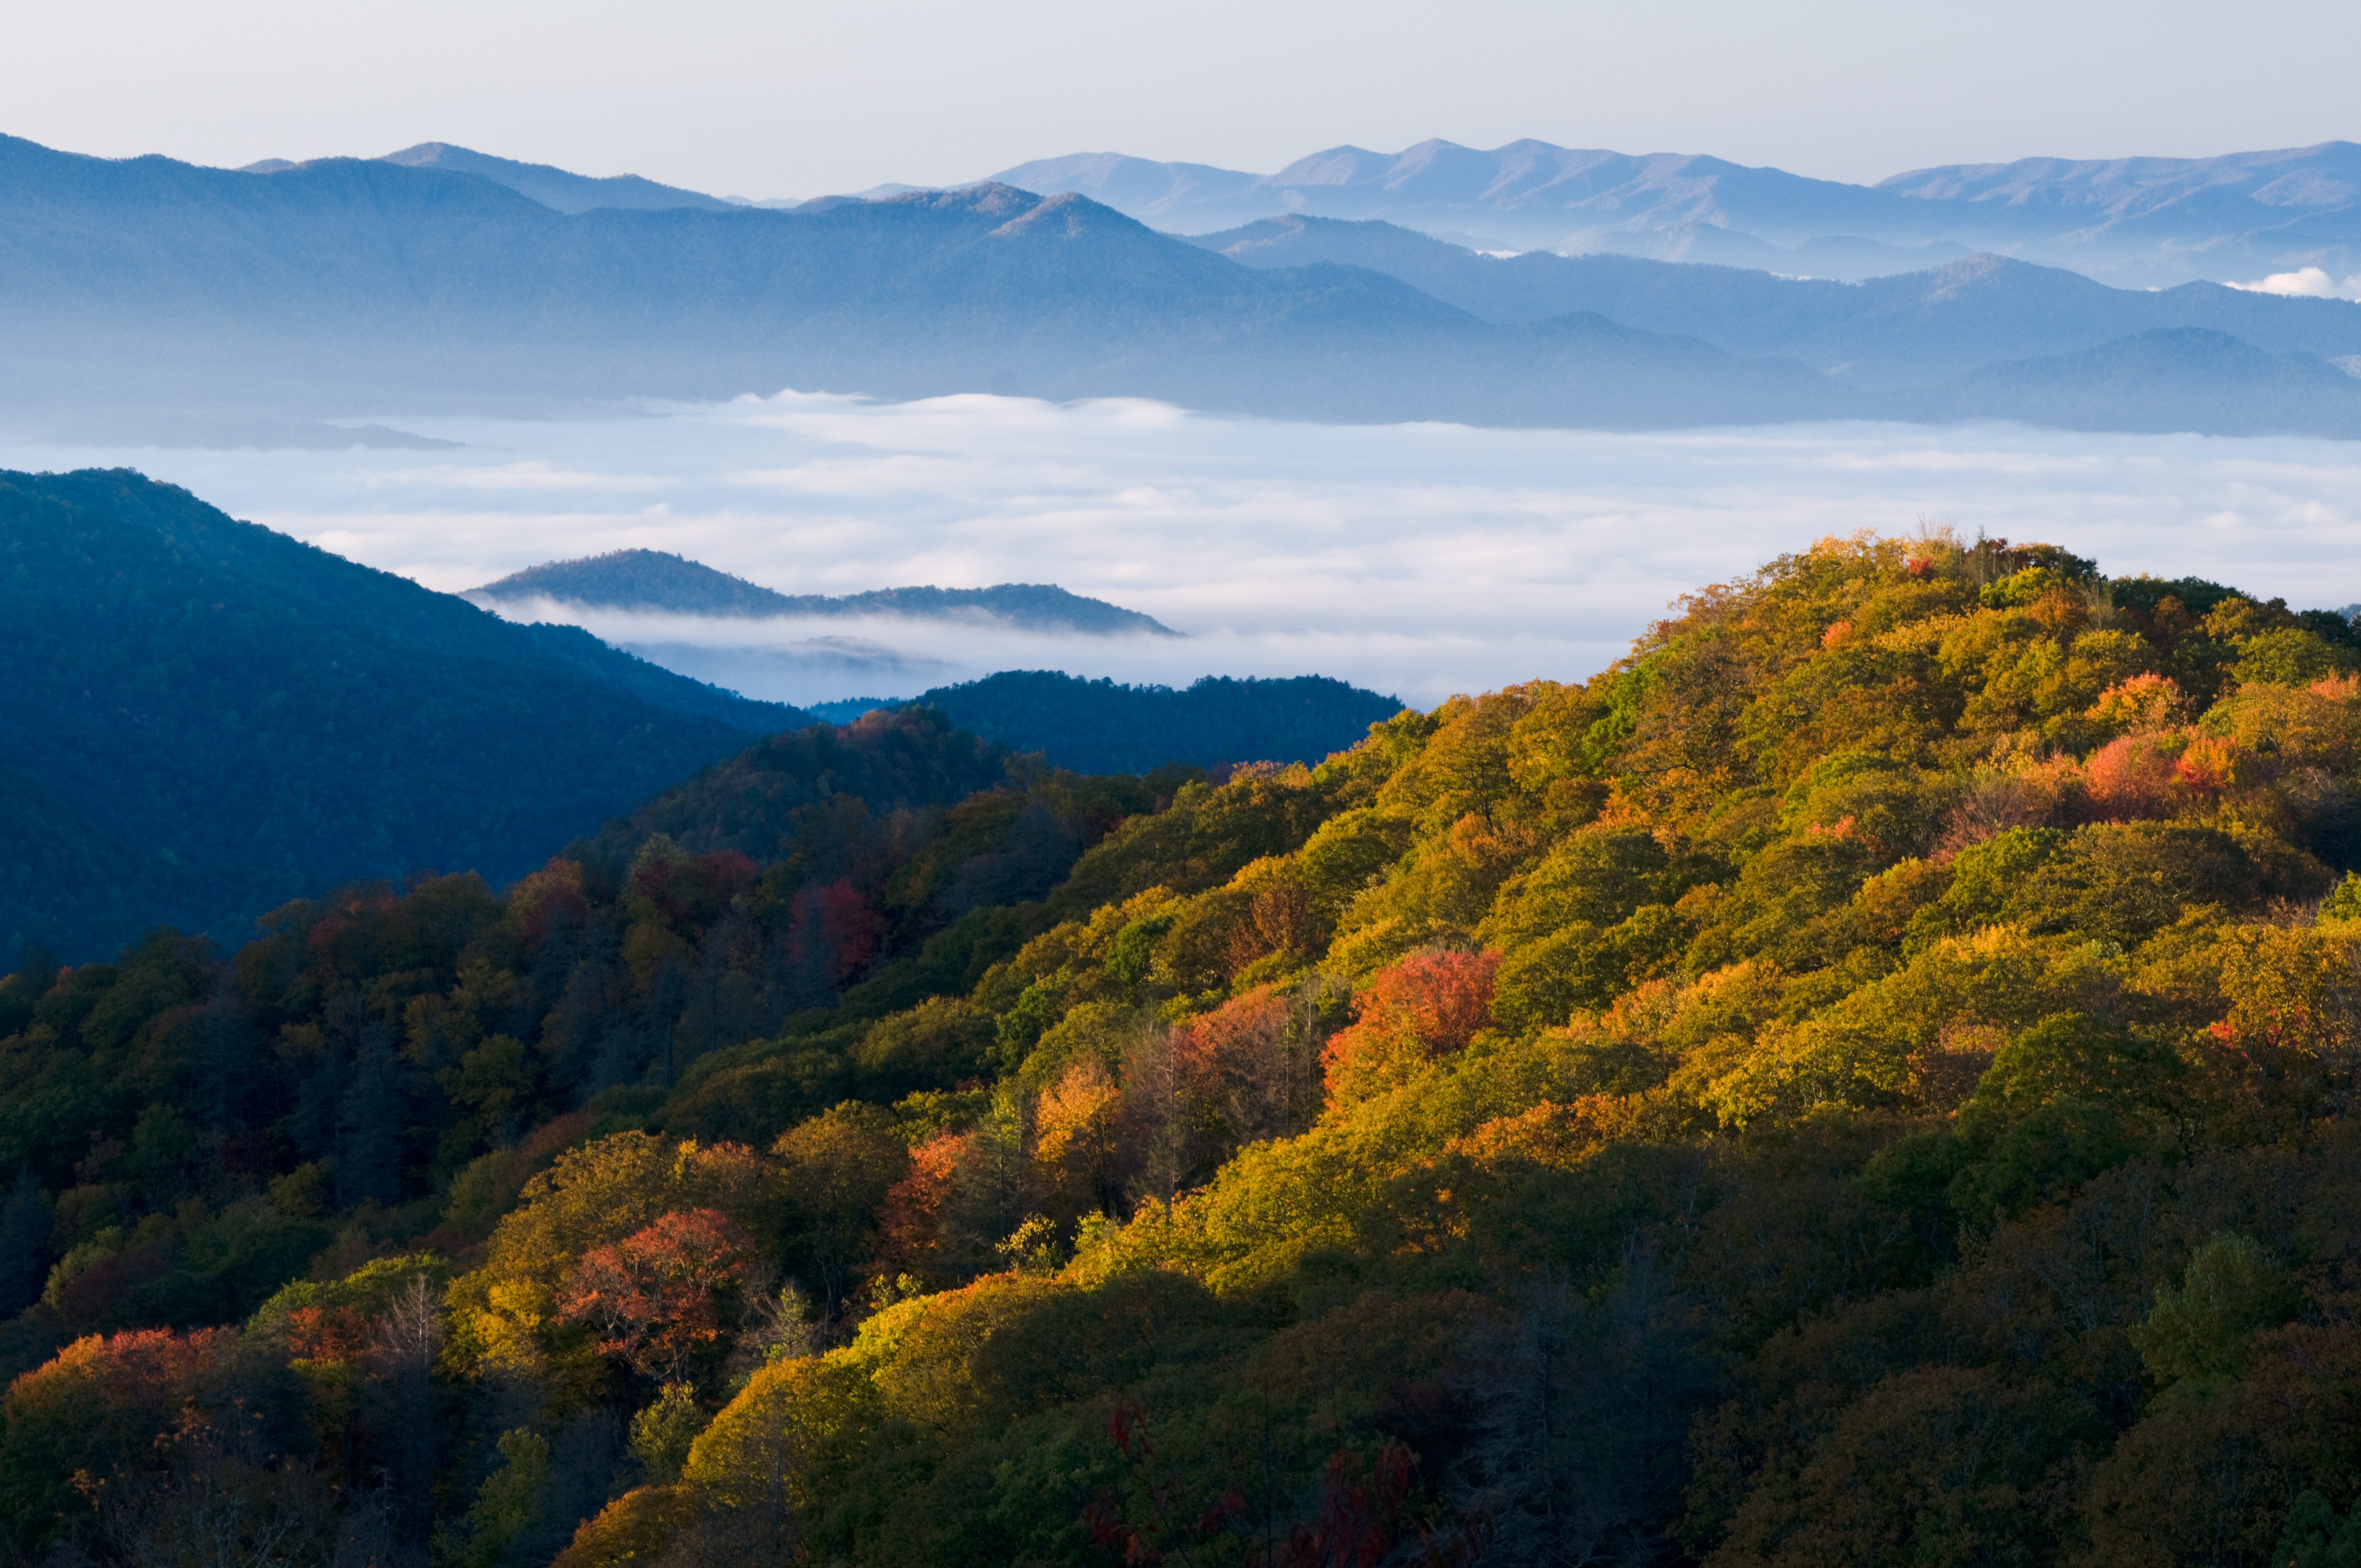 travel tuesday featured destination: smoky mountain premier rv resort